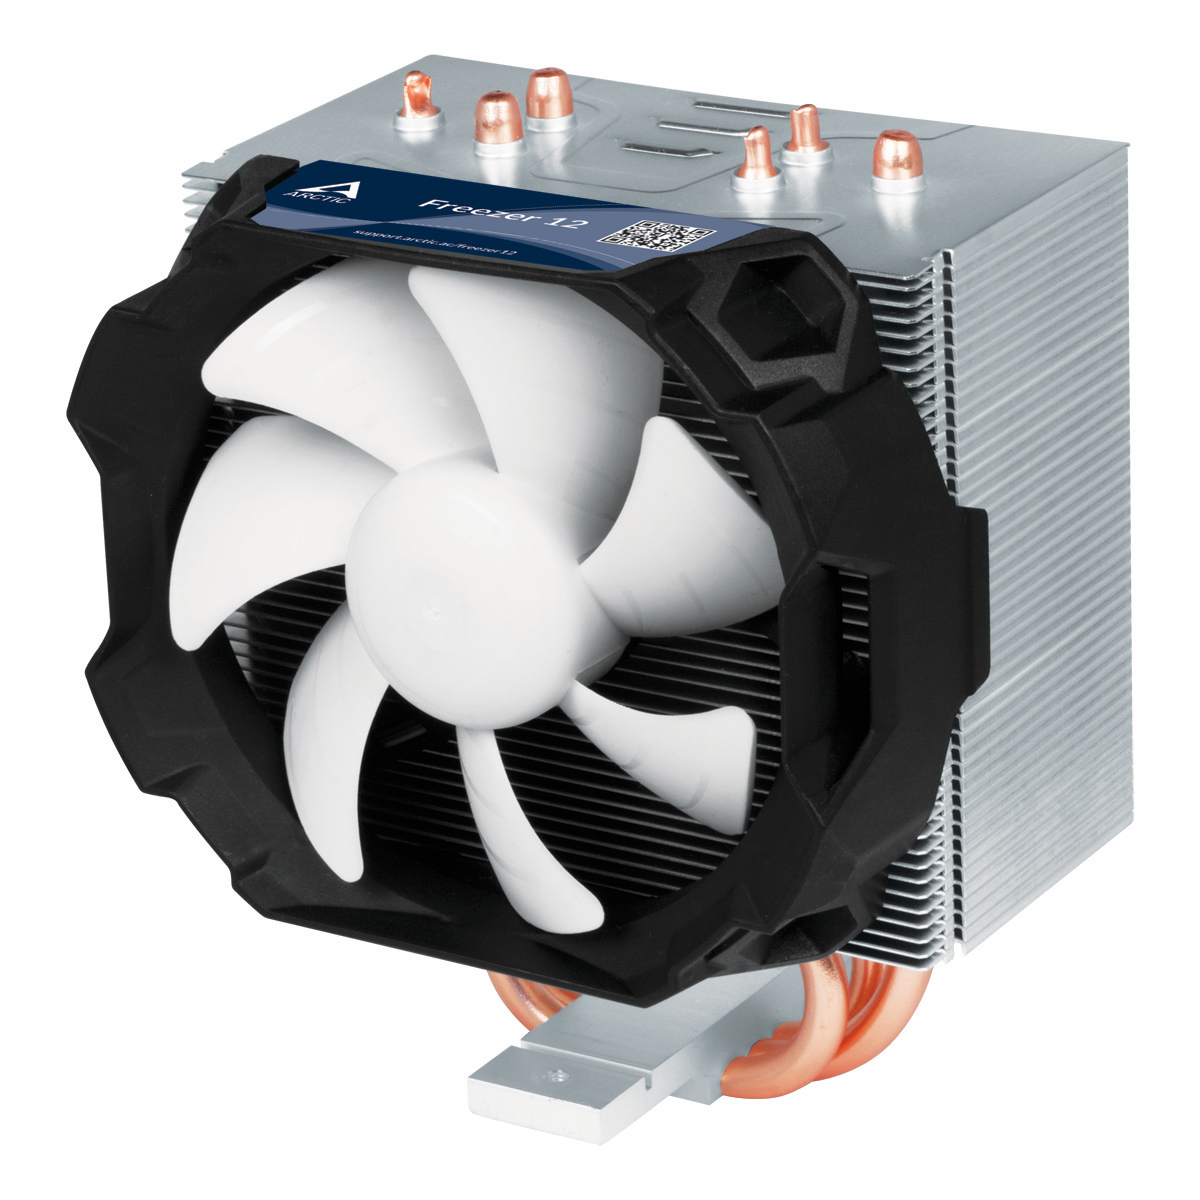 ARCTIC ACFRE00027A FREEZER 12 - COMPACT SEMI PASSIVE TOWER CPU COOLER